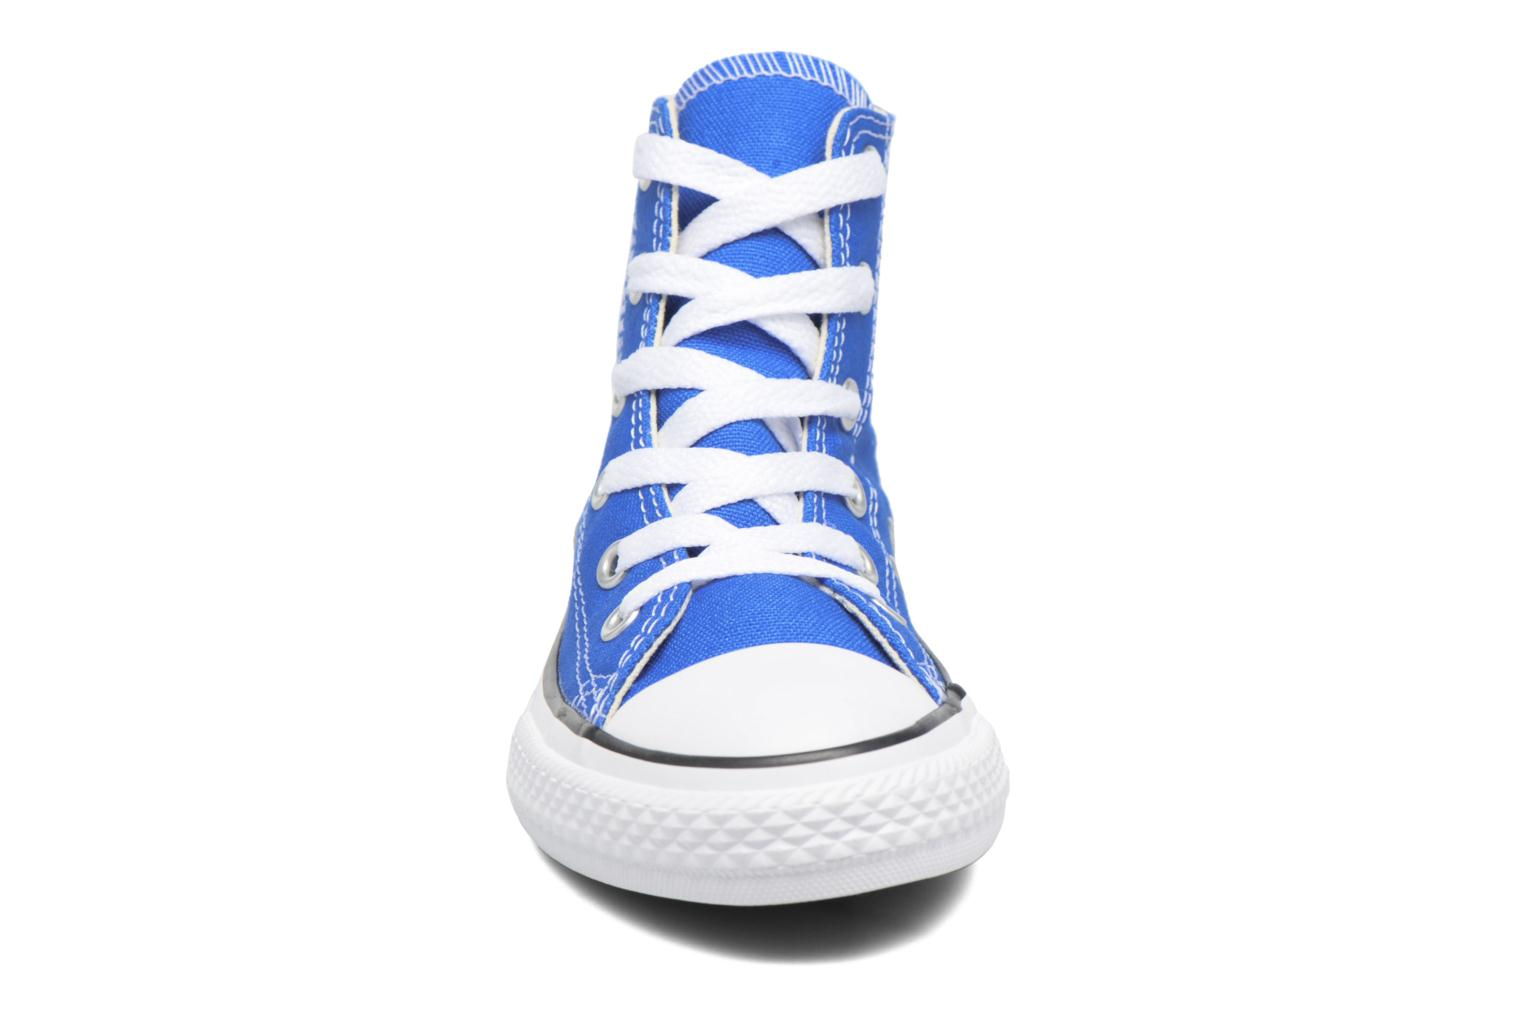 Chuck Taylor All Star Hi Soar